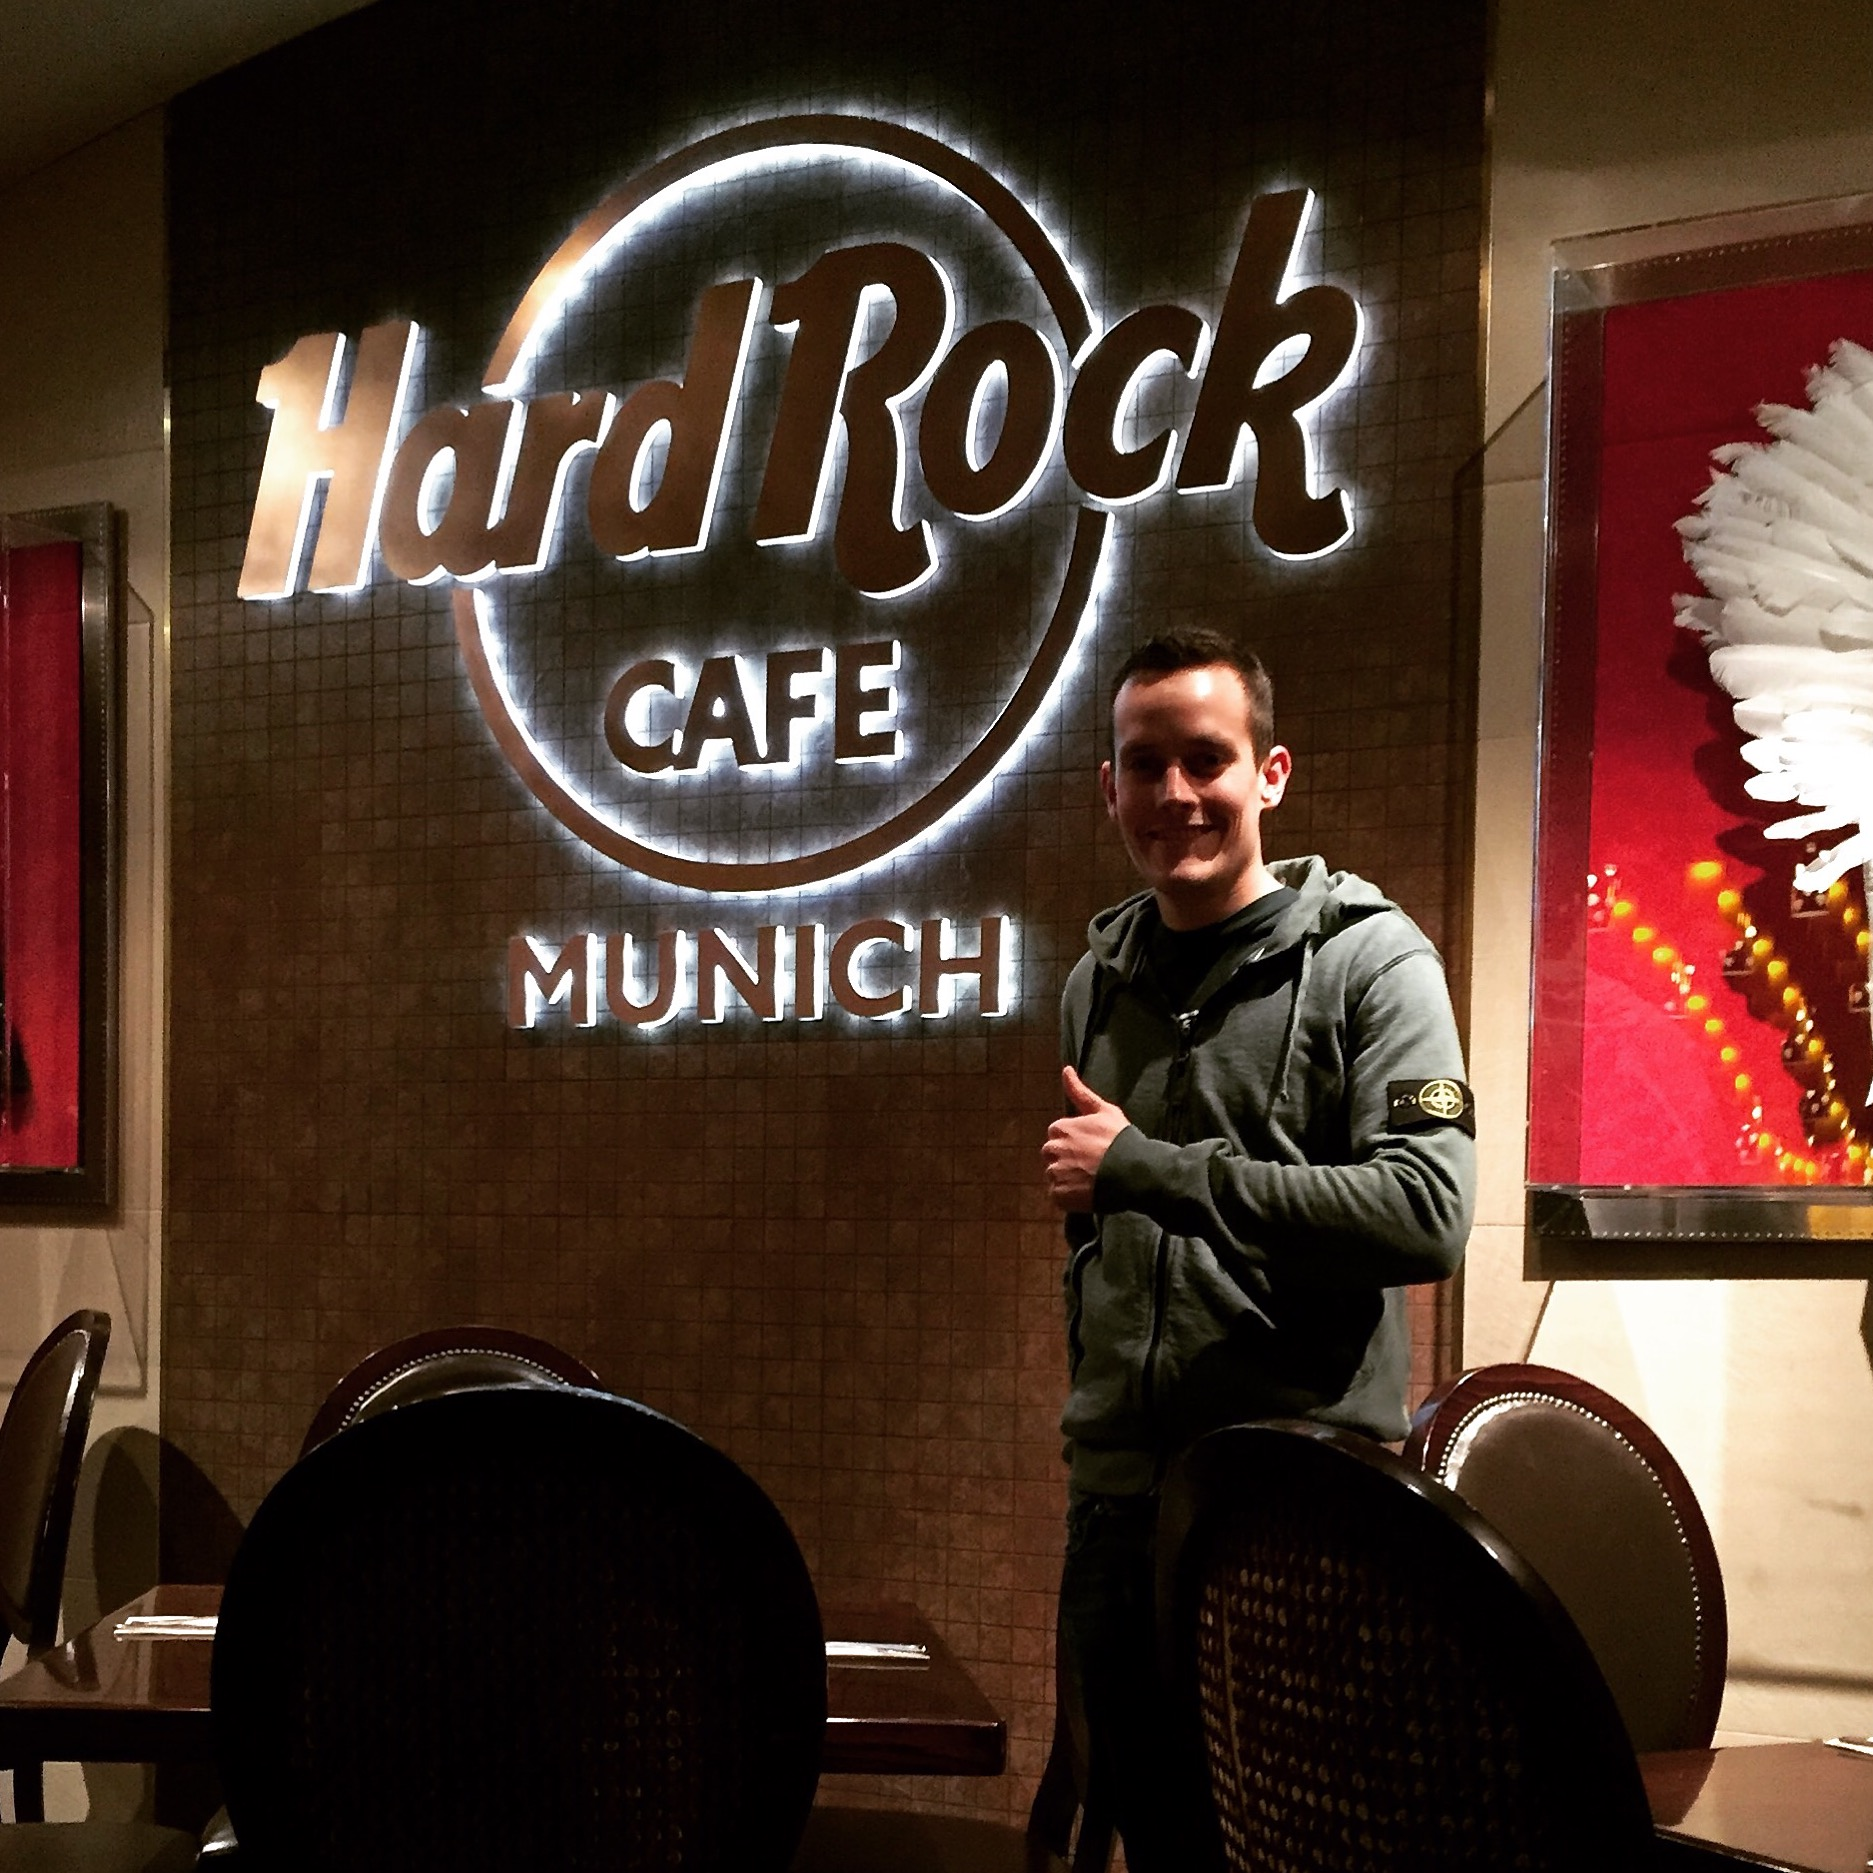 Hard Rock Cafe Munich - visited in 2015